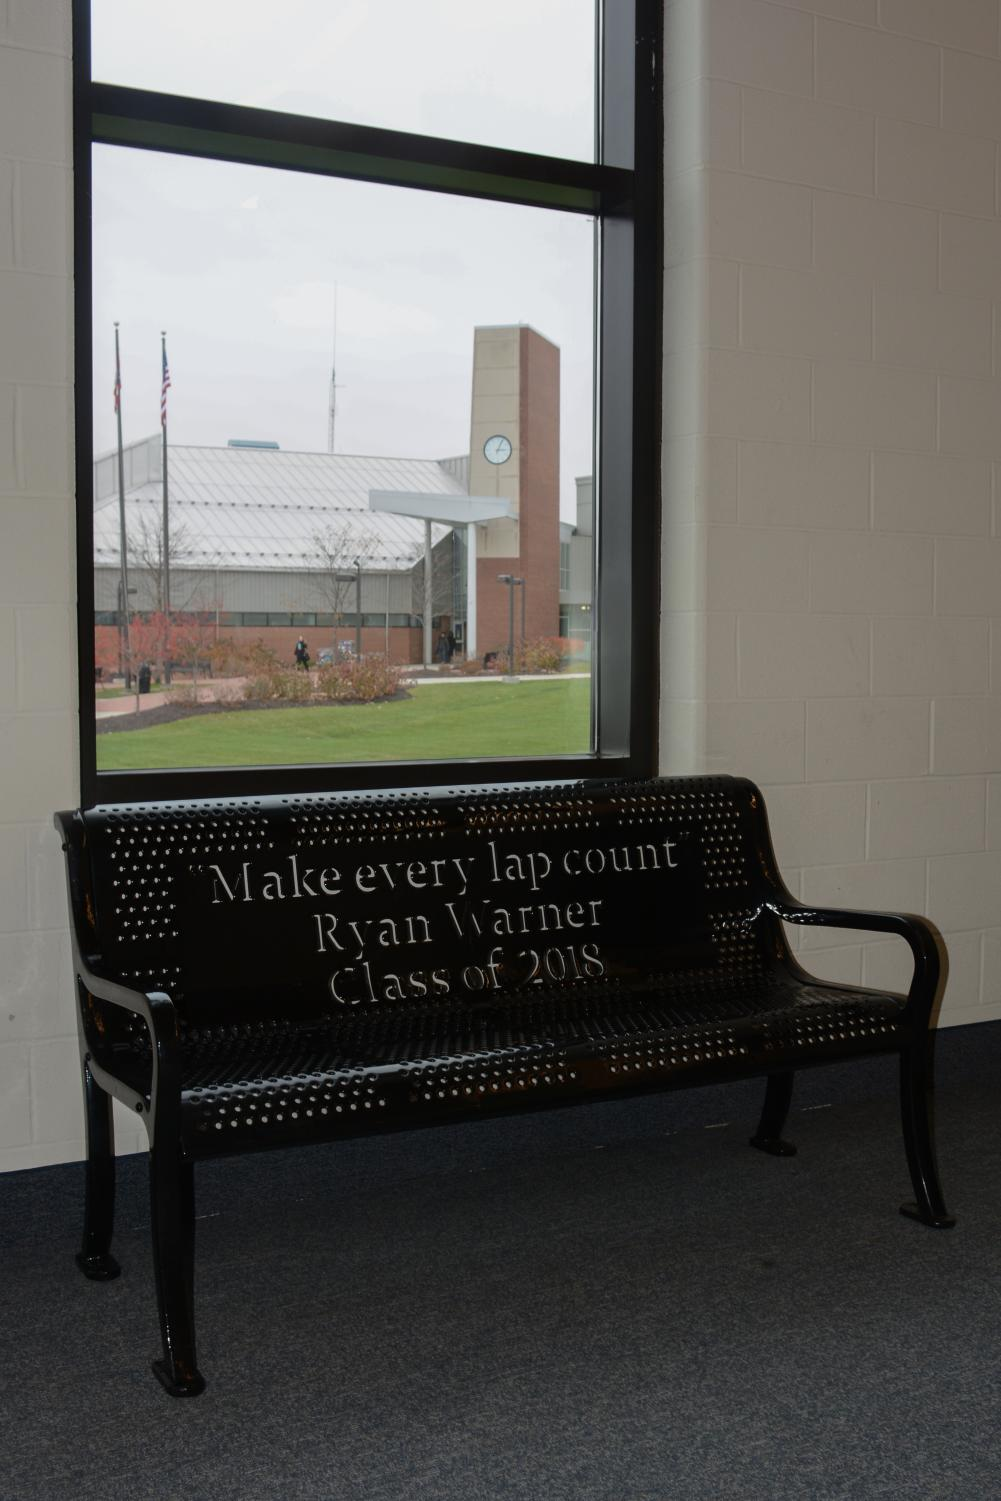 One of the Ryan Warner memorial benches will be installed outside when the weather warms. Photo by Matthew Keyerleber